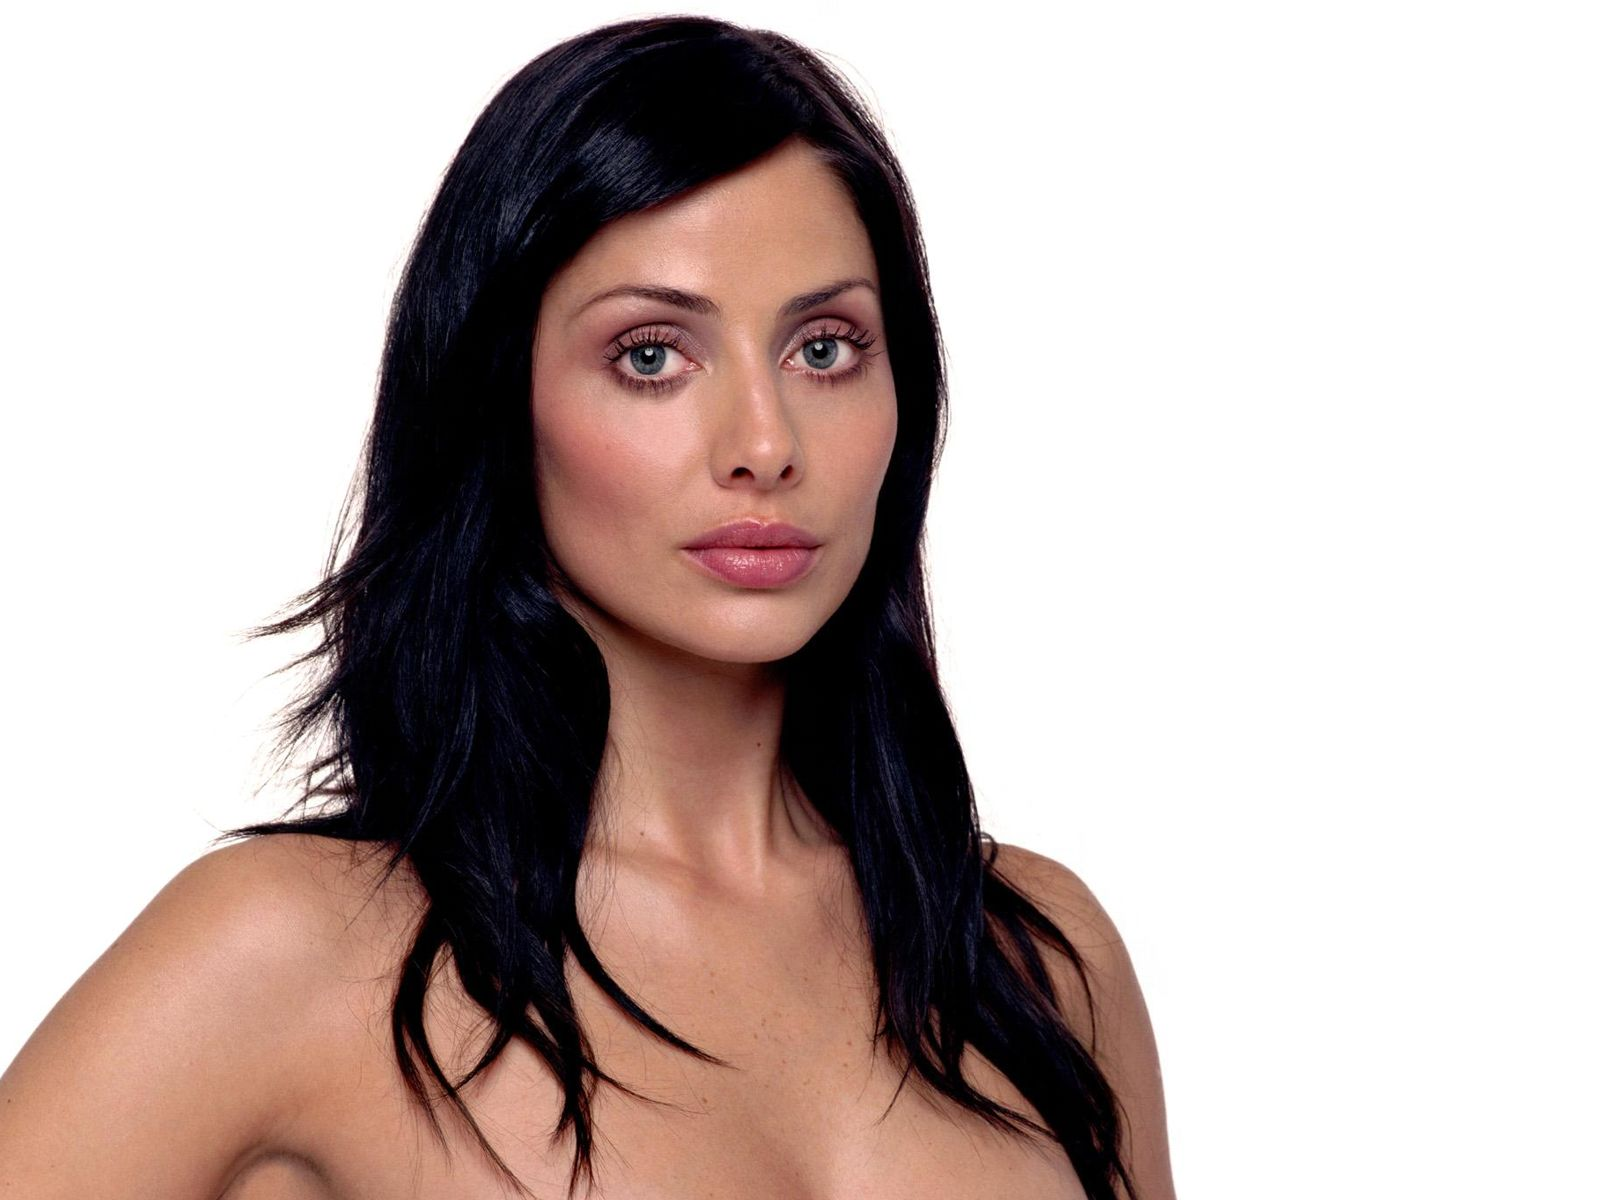 Natalie Imbruglia - New Music From White Lilies Island